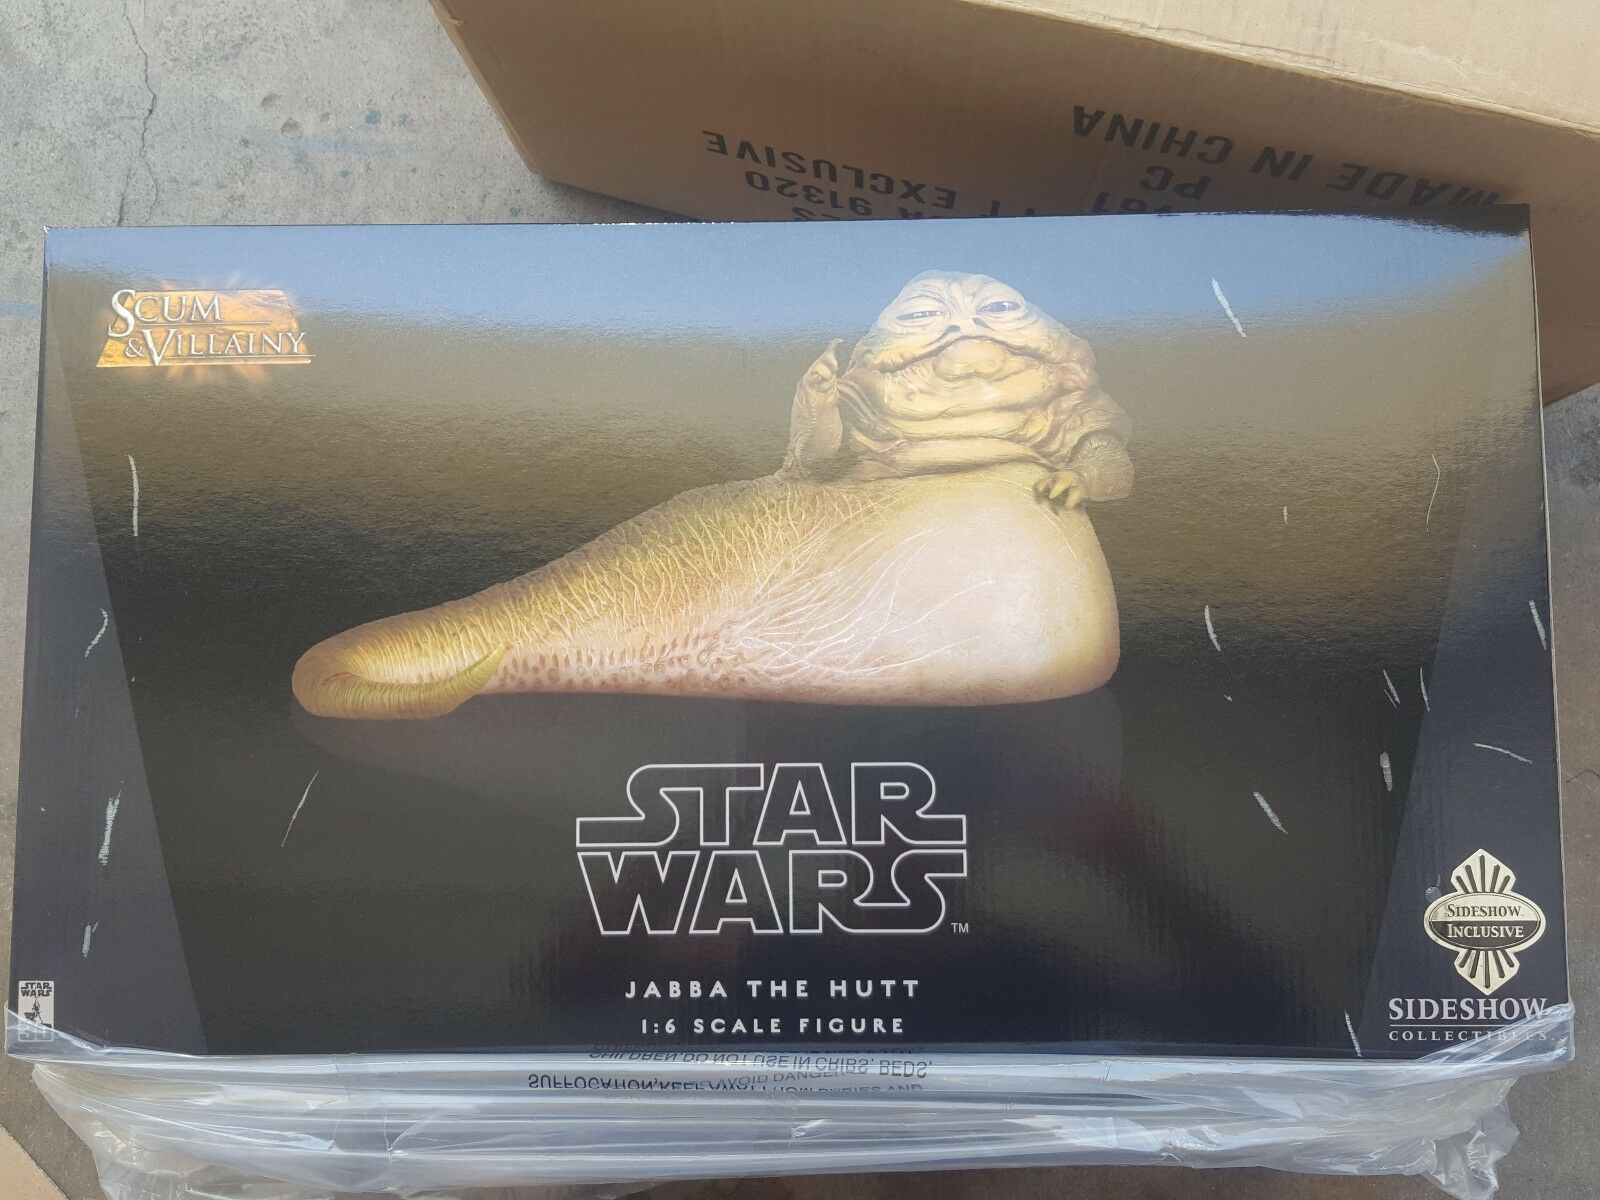 Sideshow Collectibles-Jabba the Hutt  61 0 F 480 1 6 Scale - 21461